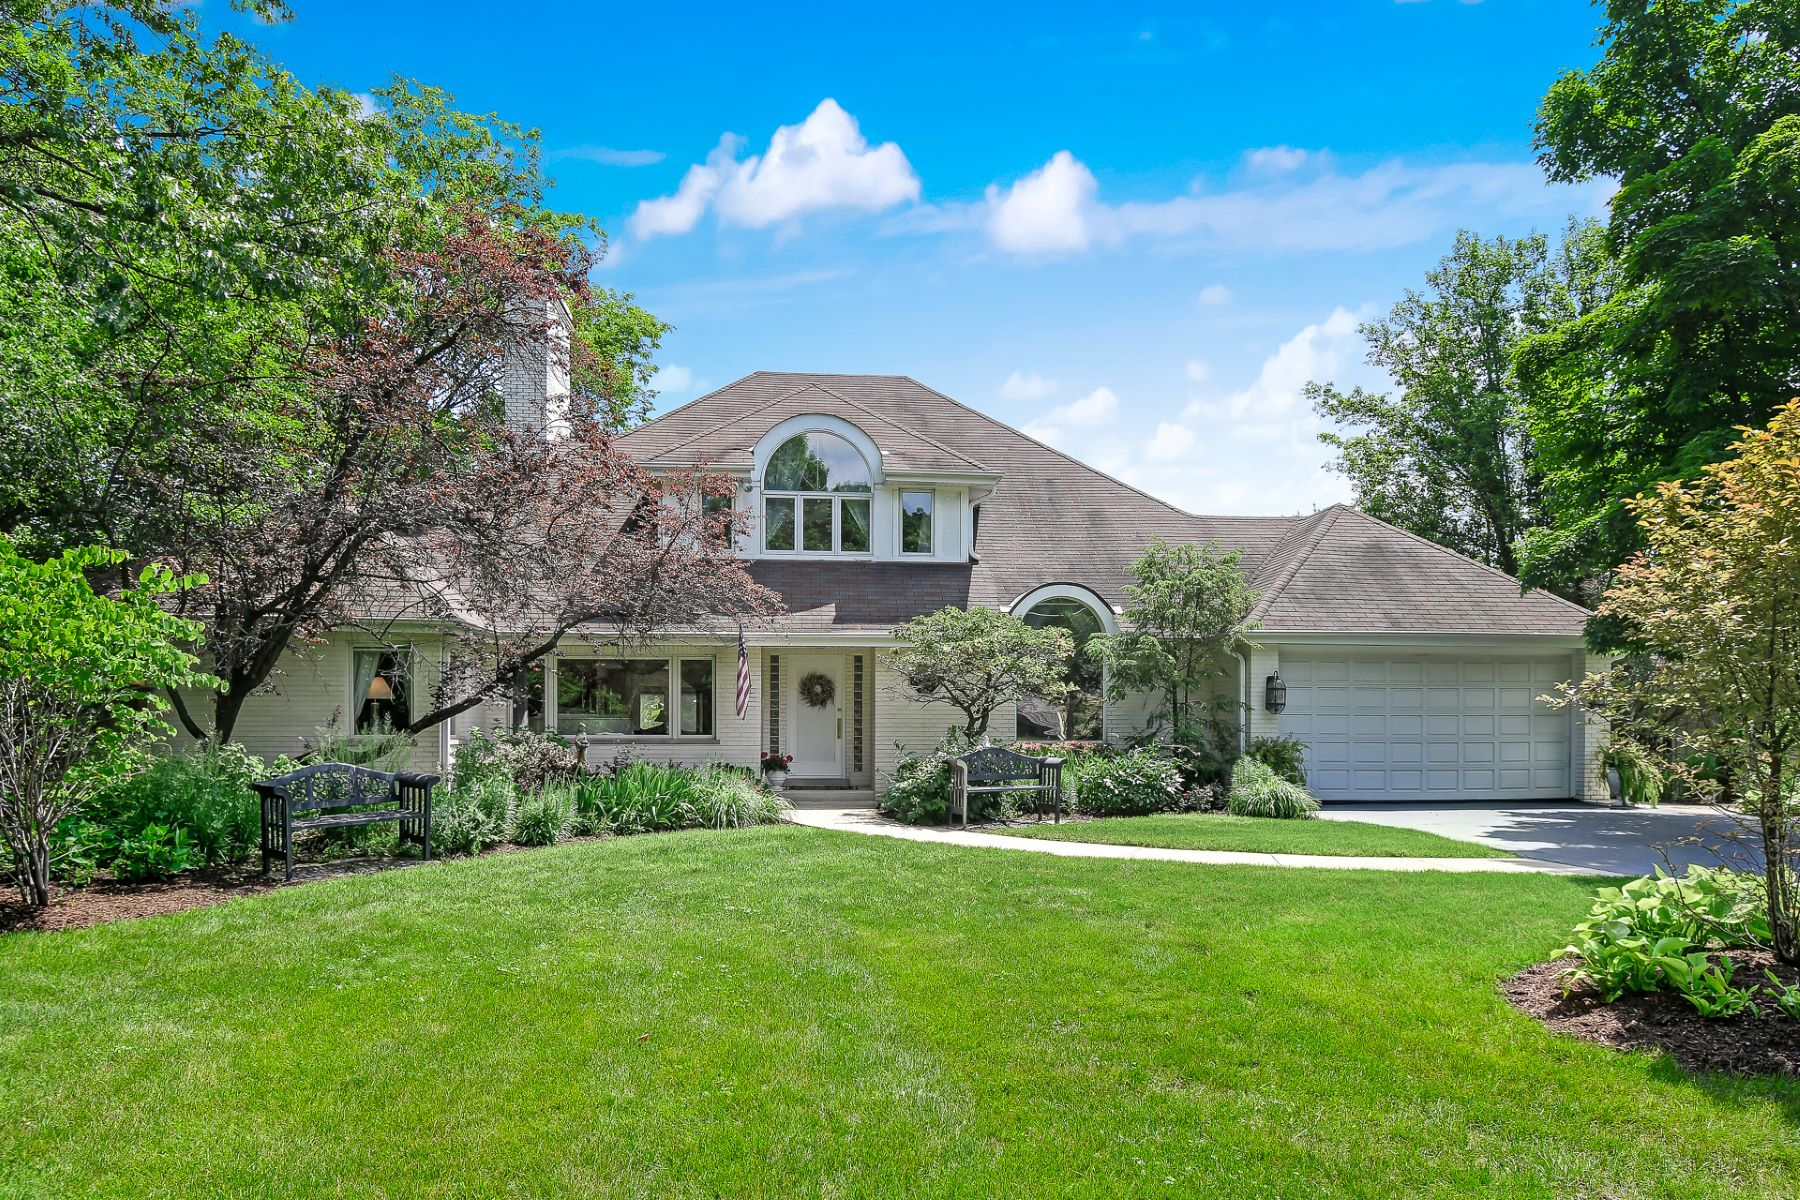 Single Family Homes for Active at Desirable Oak Brook Home 3617 N Madison Street Oak Brook, Illinois 60523 United States